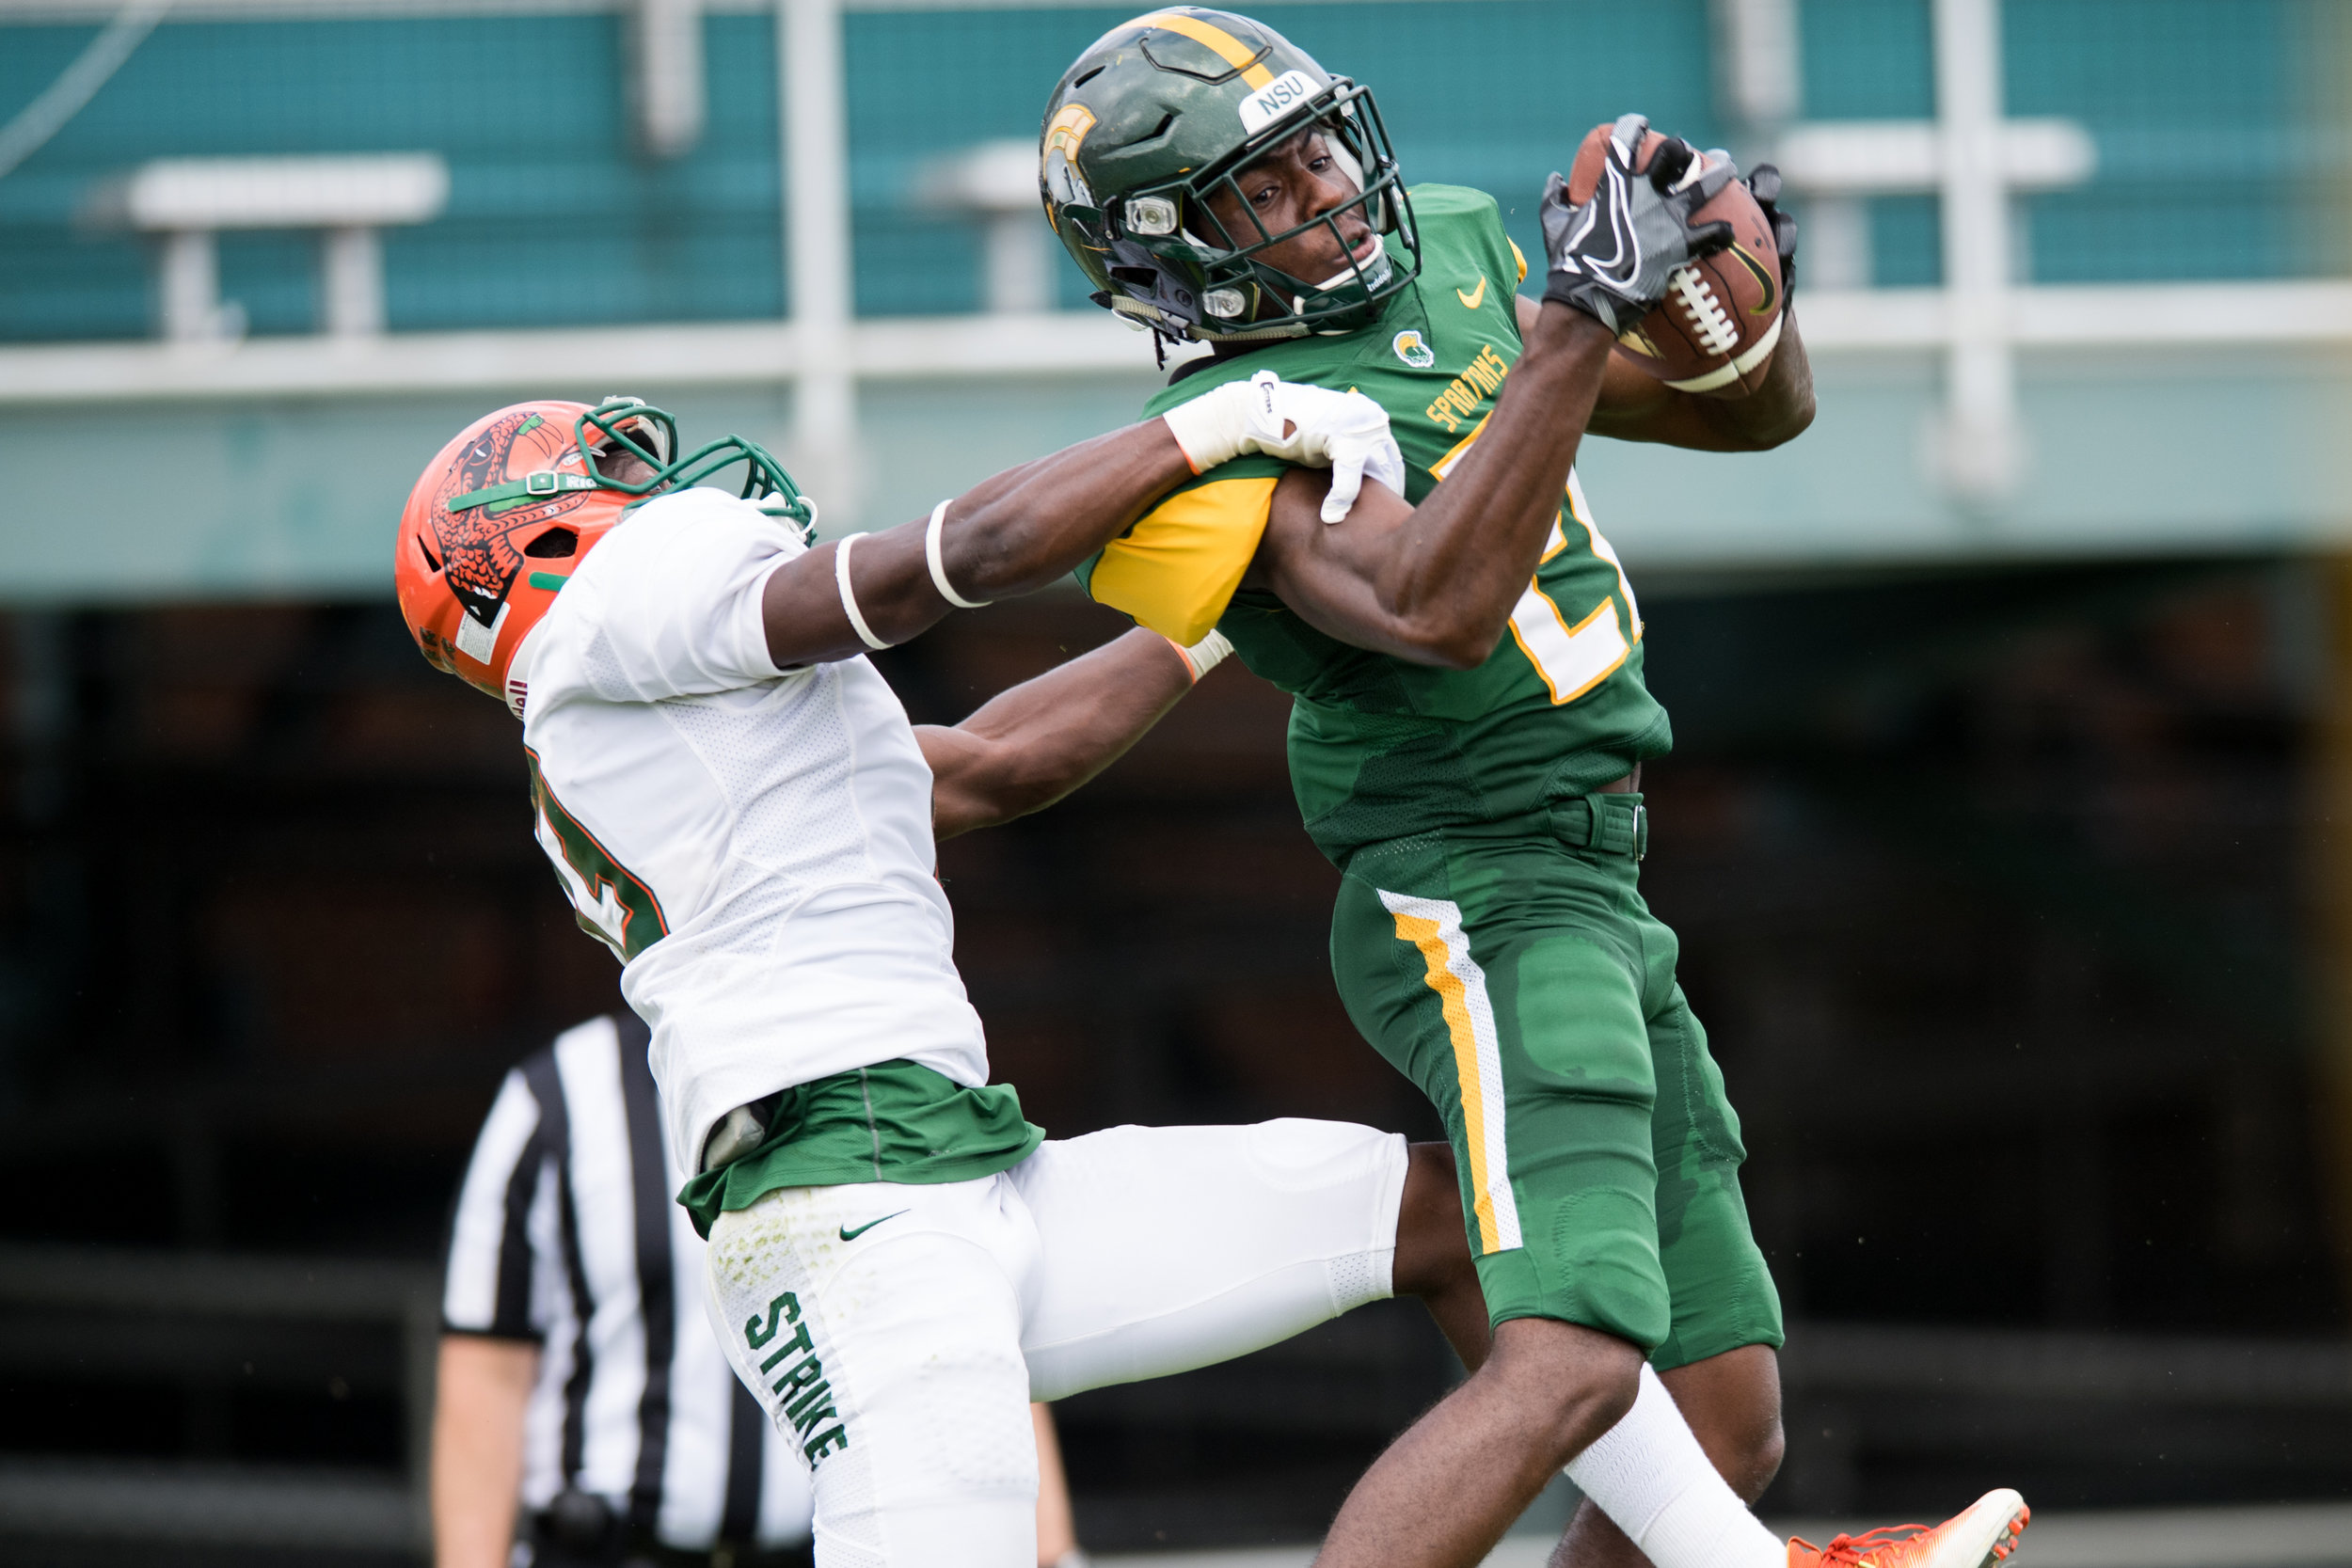 Norfolk State Spartans wide receiver George Wahee (21) catches a touchdown pass against Florida A&M Rattlers defensive back Jules Dornevil (13) during the Saturday, October 7th 2017 game held at Dick Price Stadium in Norfolk, Virginia. Score is tied 14-14 at the half.